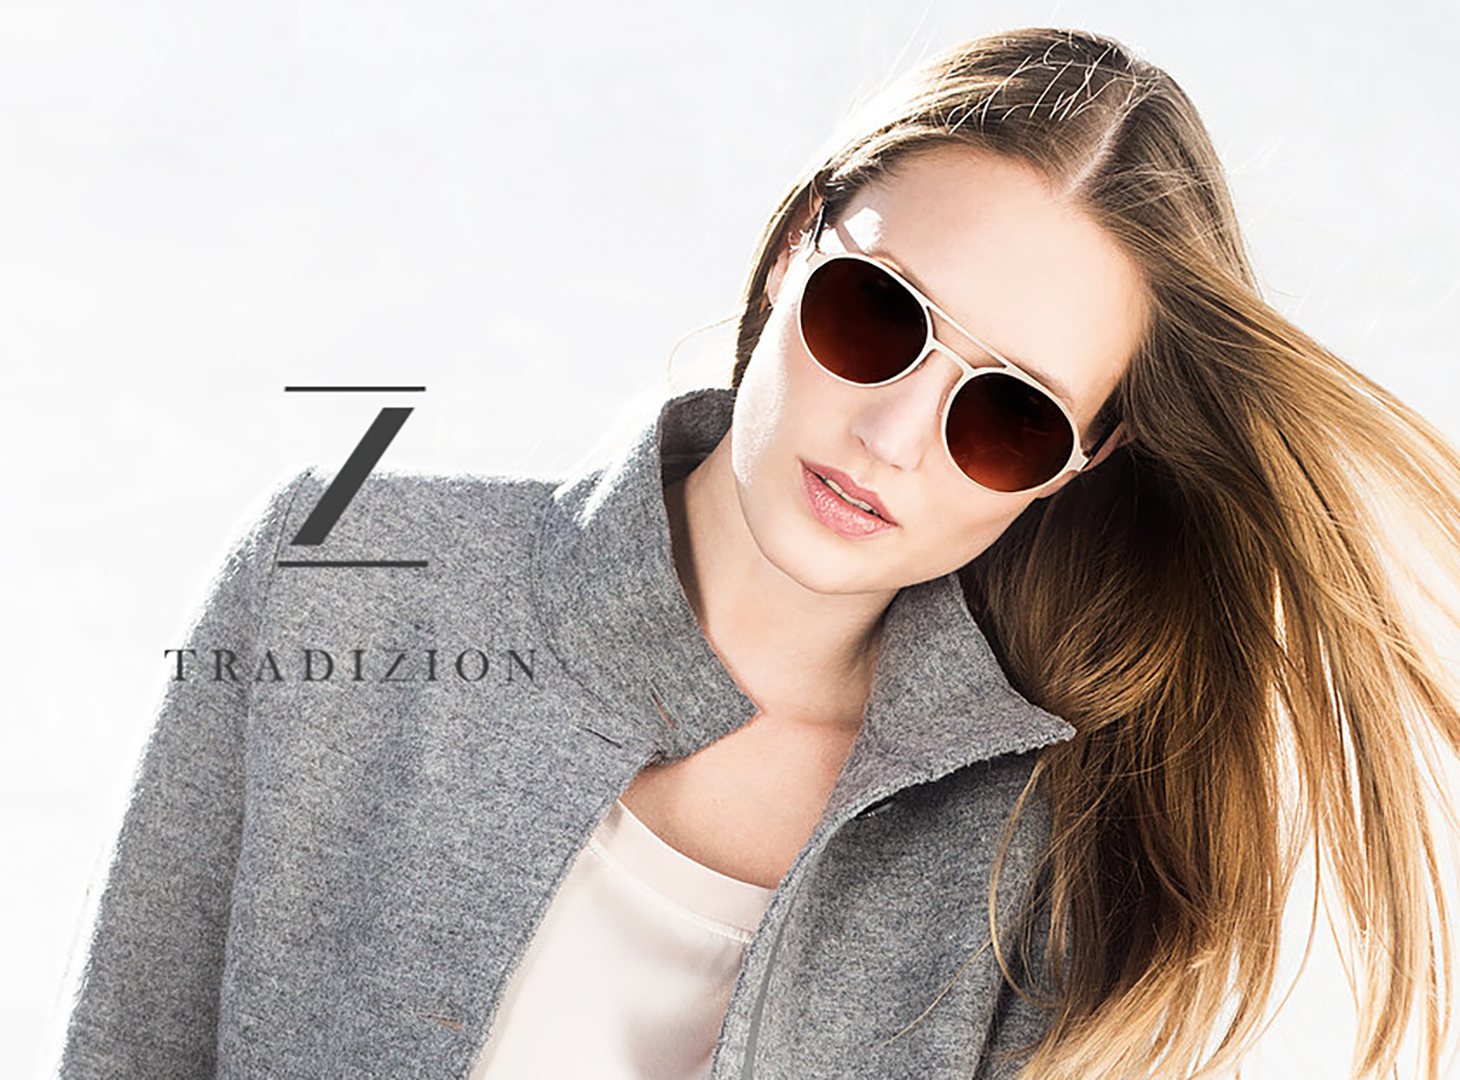 tradizion fashion women men